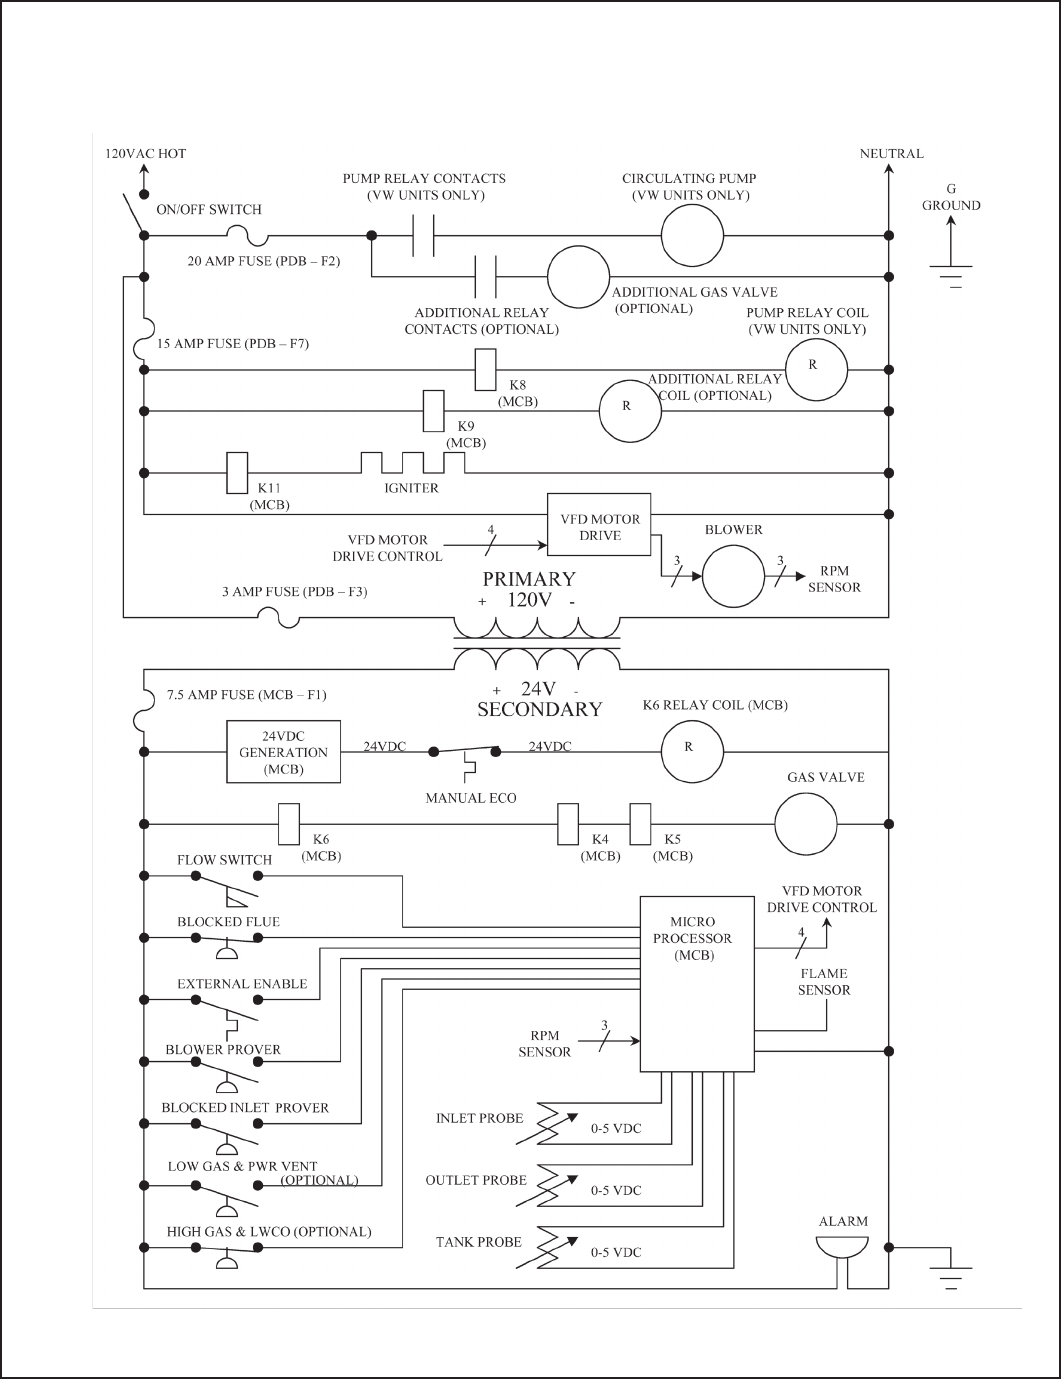 hight resolution of russell refrigeration wiring diagrams page 32 of town appliance a o smith boiler vb